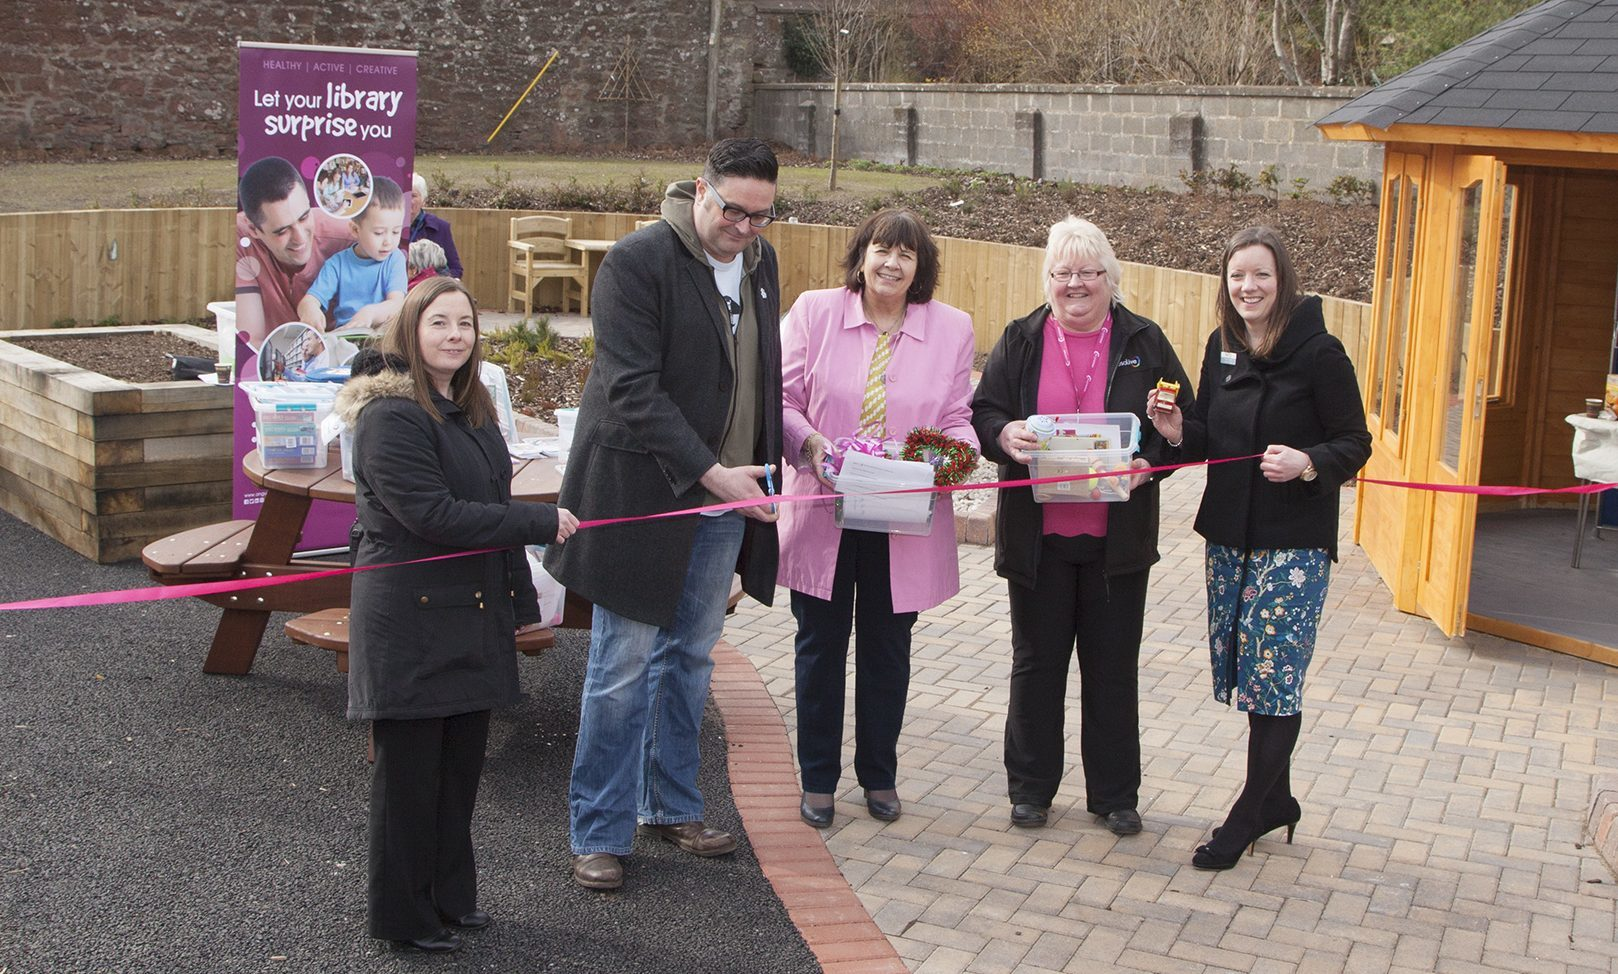 From left: Lindsay Shaw of Alzheimer Scotland, Graham Galloway of Kirriemuir Connections, Amanda Kopel, Christine Sharp of ANGUSalive and Kirsty Shaw, chief executive of ANGUSalive.